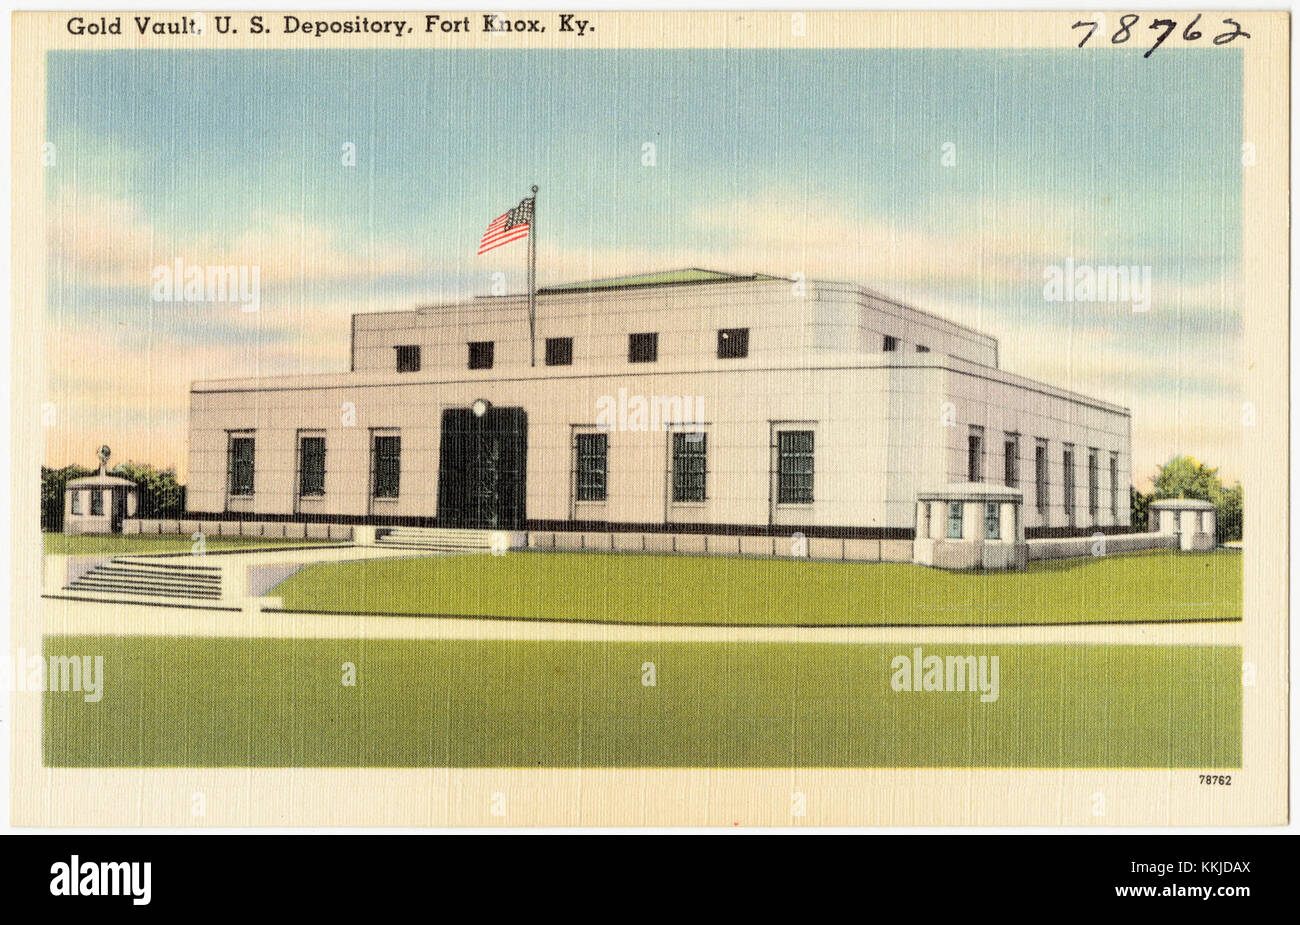 Fort Knox Gold Stock Photos & Fort Knox Gold Stock Images - Alamy